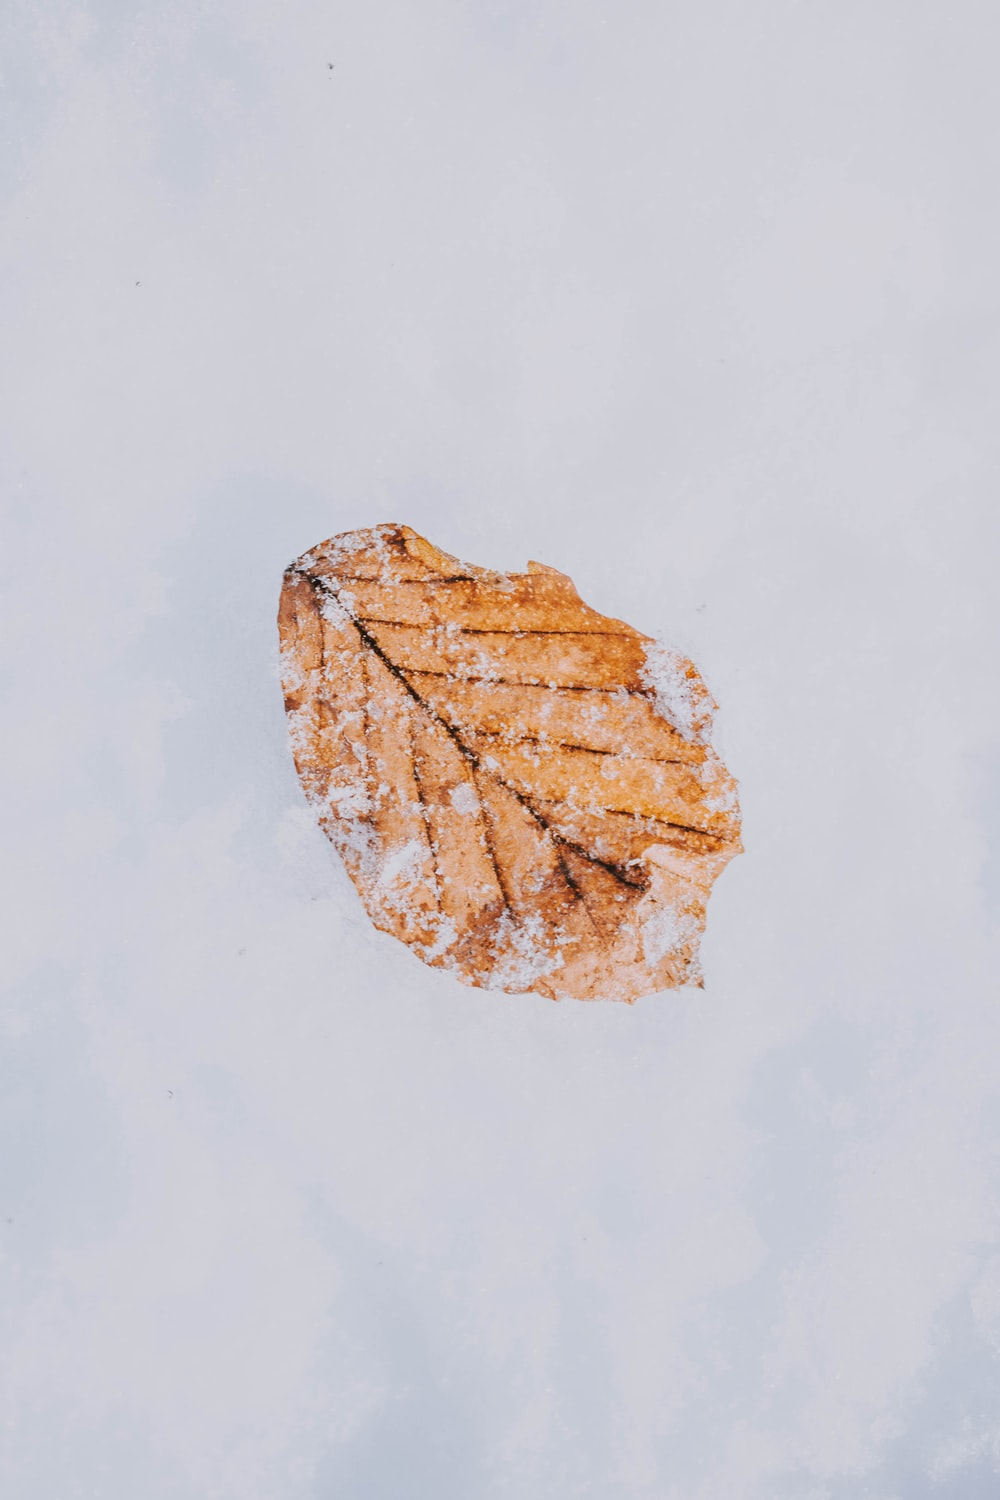 dried leaf covering with snow